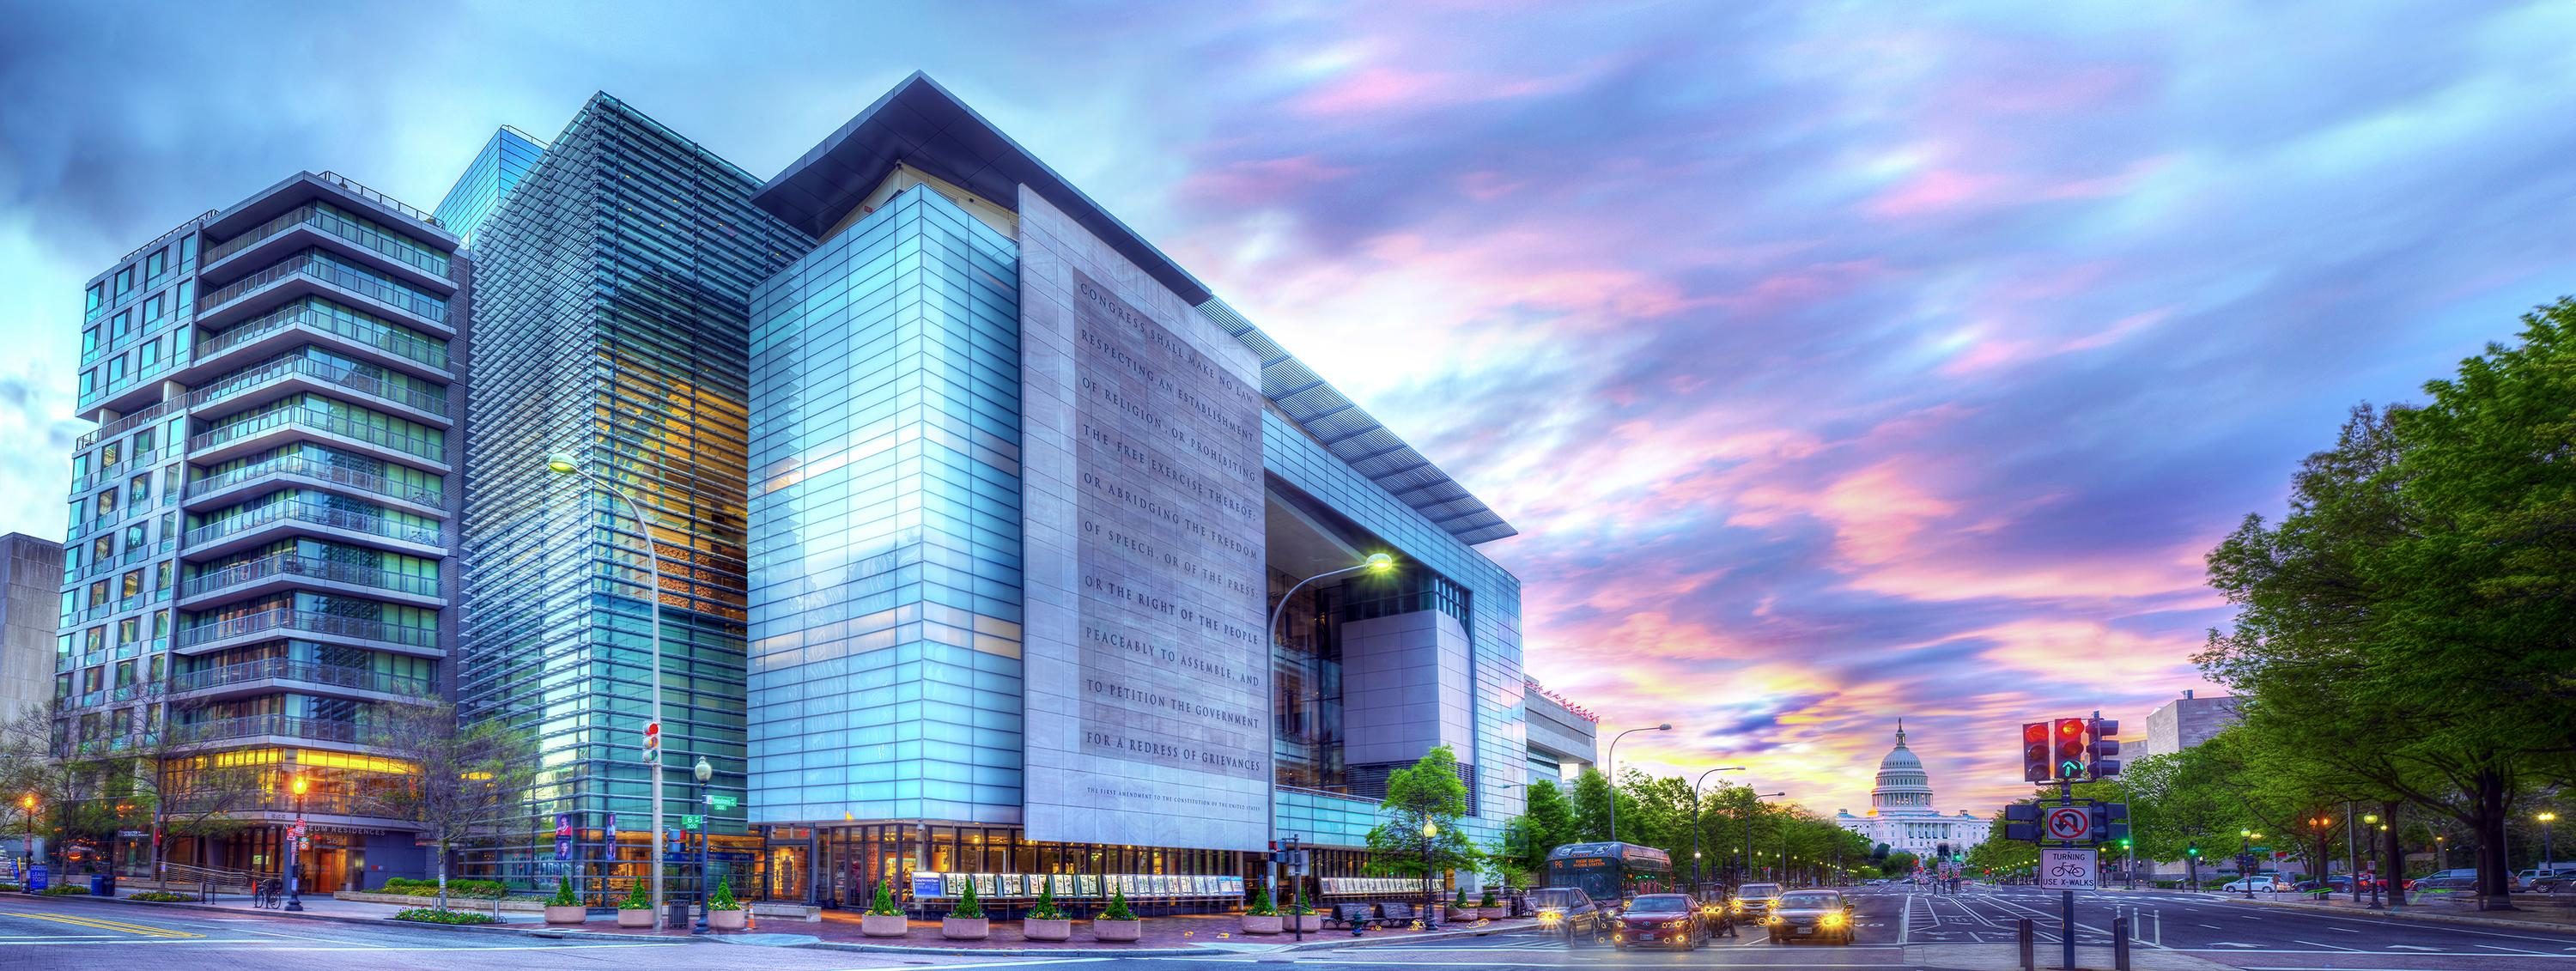 Check out the Newseum! This is a must see D.C. attraction and the perfect way to spend a rainy day. Open Monday through Saturday from 9 a.m. to 5 p.m. and Sunday from 10 a.m. to 5 p.m. TICKETS: Adults, 19 to 64: $24.95;  Seniors, 65 and older: $19.95; Youth, 7 to 18: $14.95 (Photo credit: Maria Bryk//Newseum)